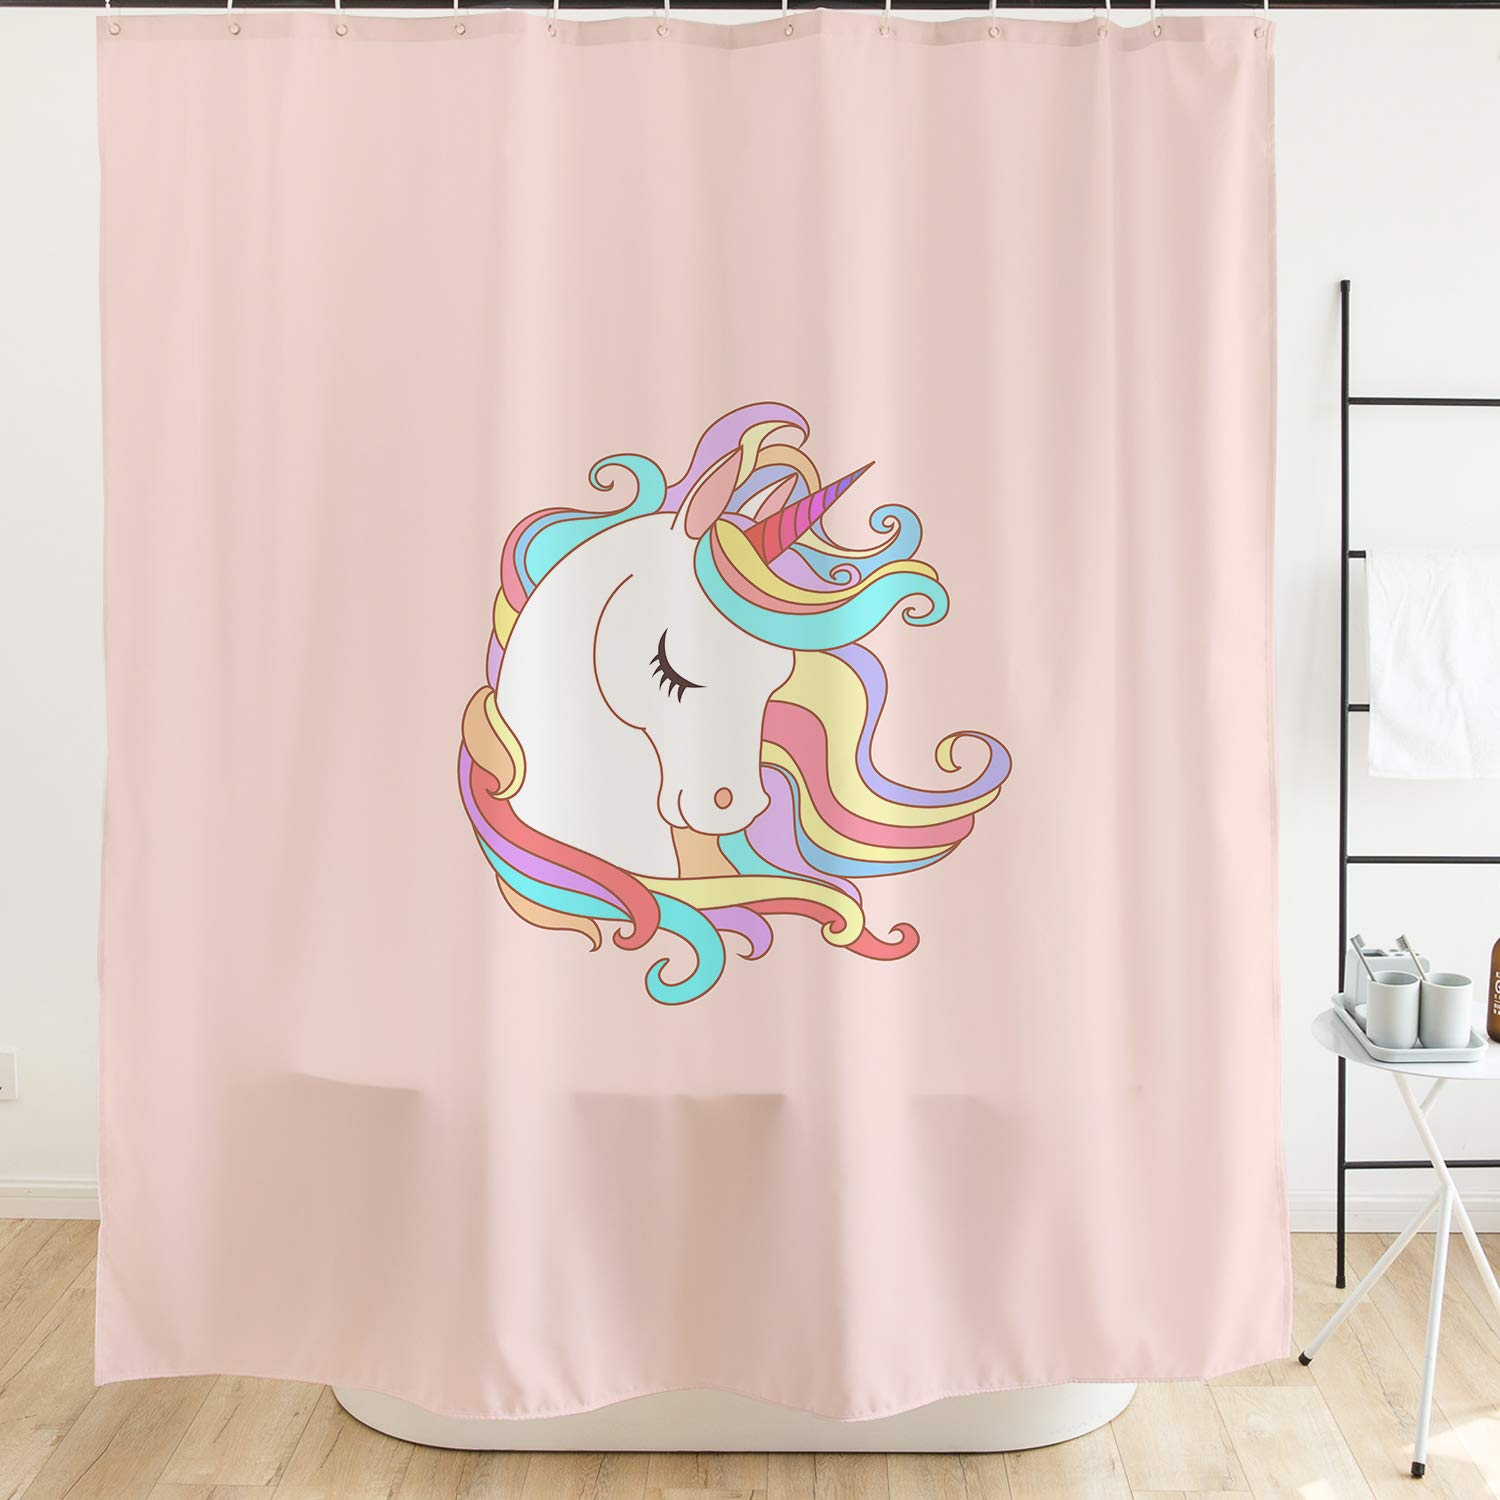 Ofat Home Colorful Cartoon Pink Unicorn Kids Shower Curtain with Hooks 71x71 inch Waterproof Mildew Resistant Fabric, No Liner Needed Children's Bathroom Gift Decor Accessories